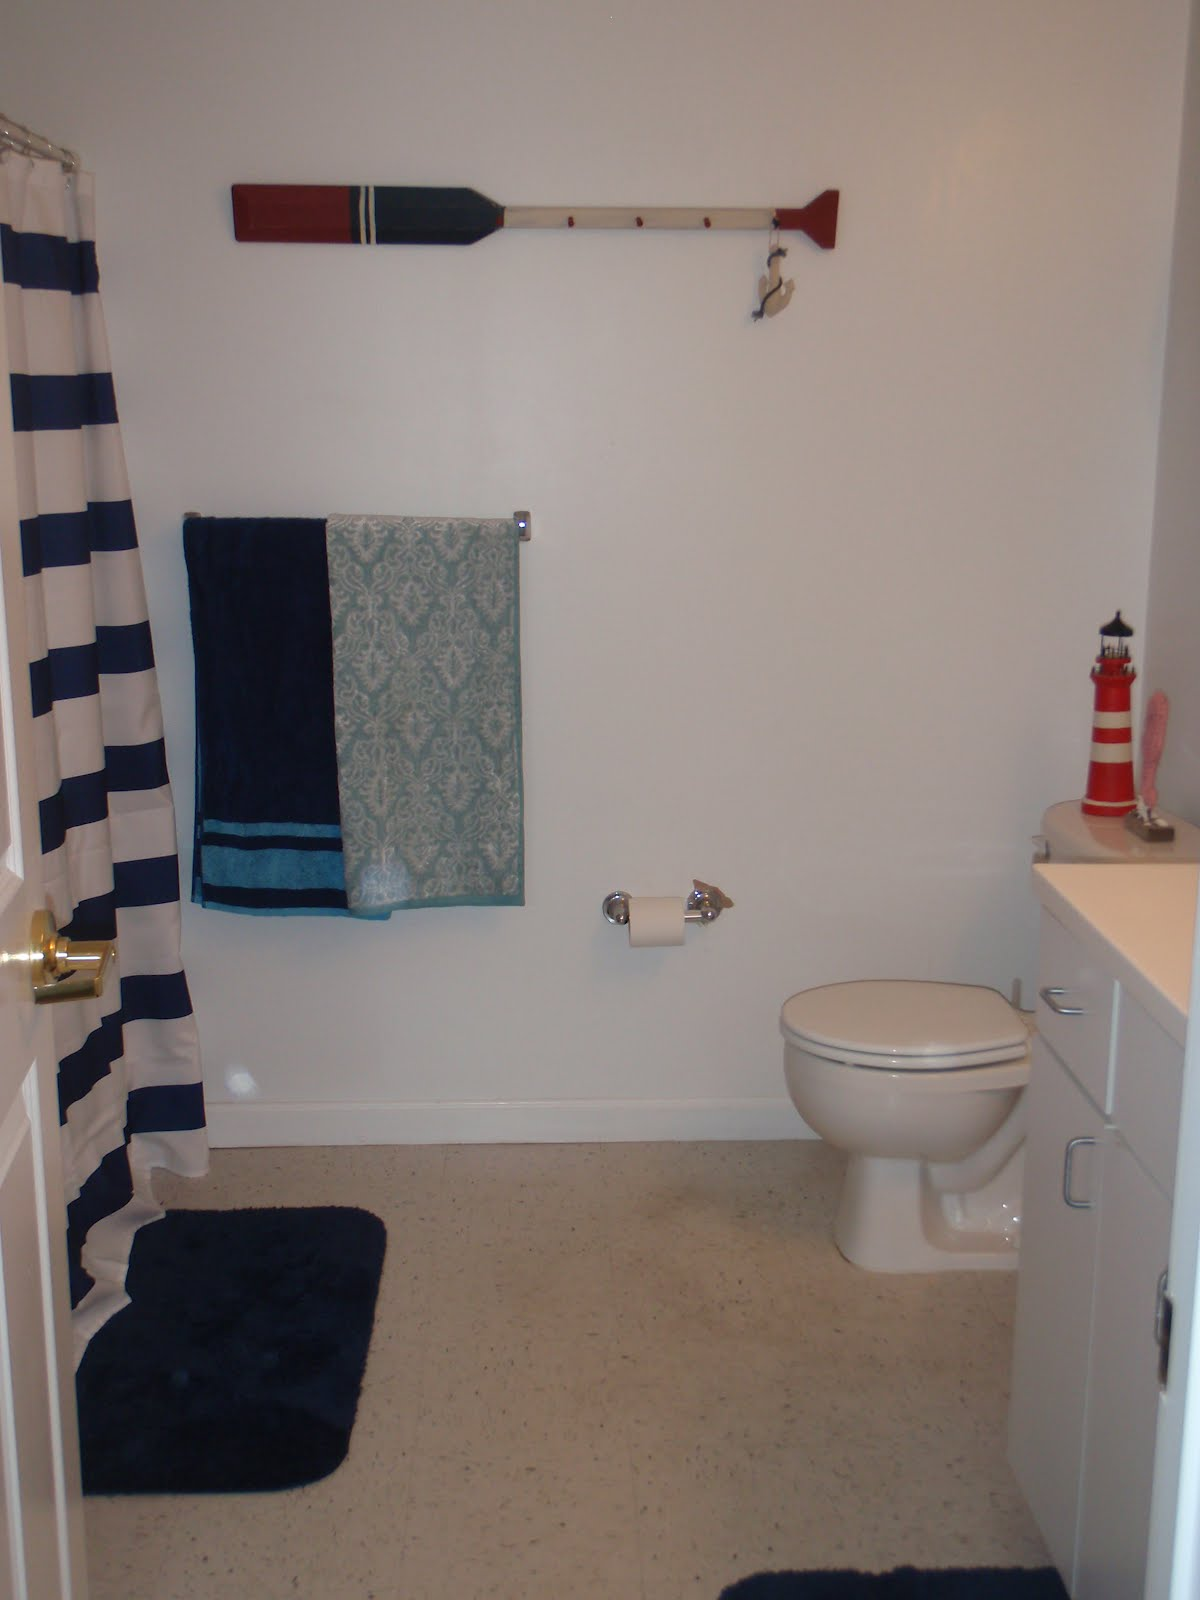 Nautical by Nature  Nautical Photo of the Week  A Nautical Bathroom. Anchor Bathroom Decor   Best Modern World Interior